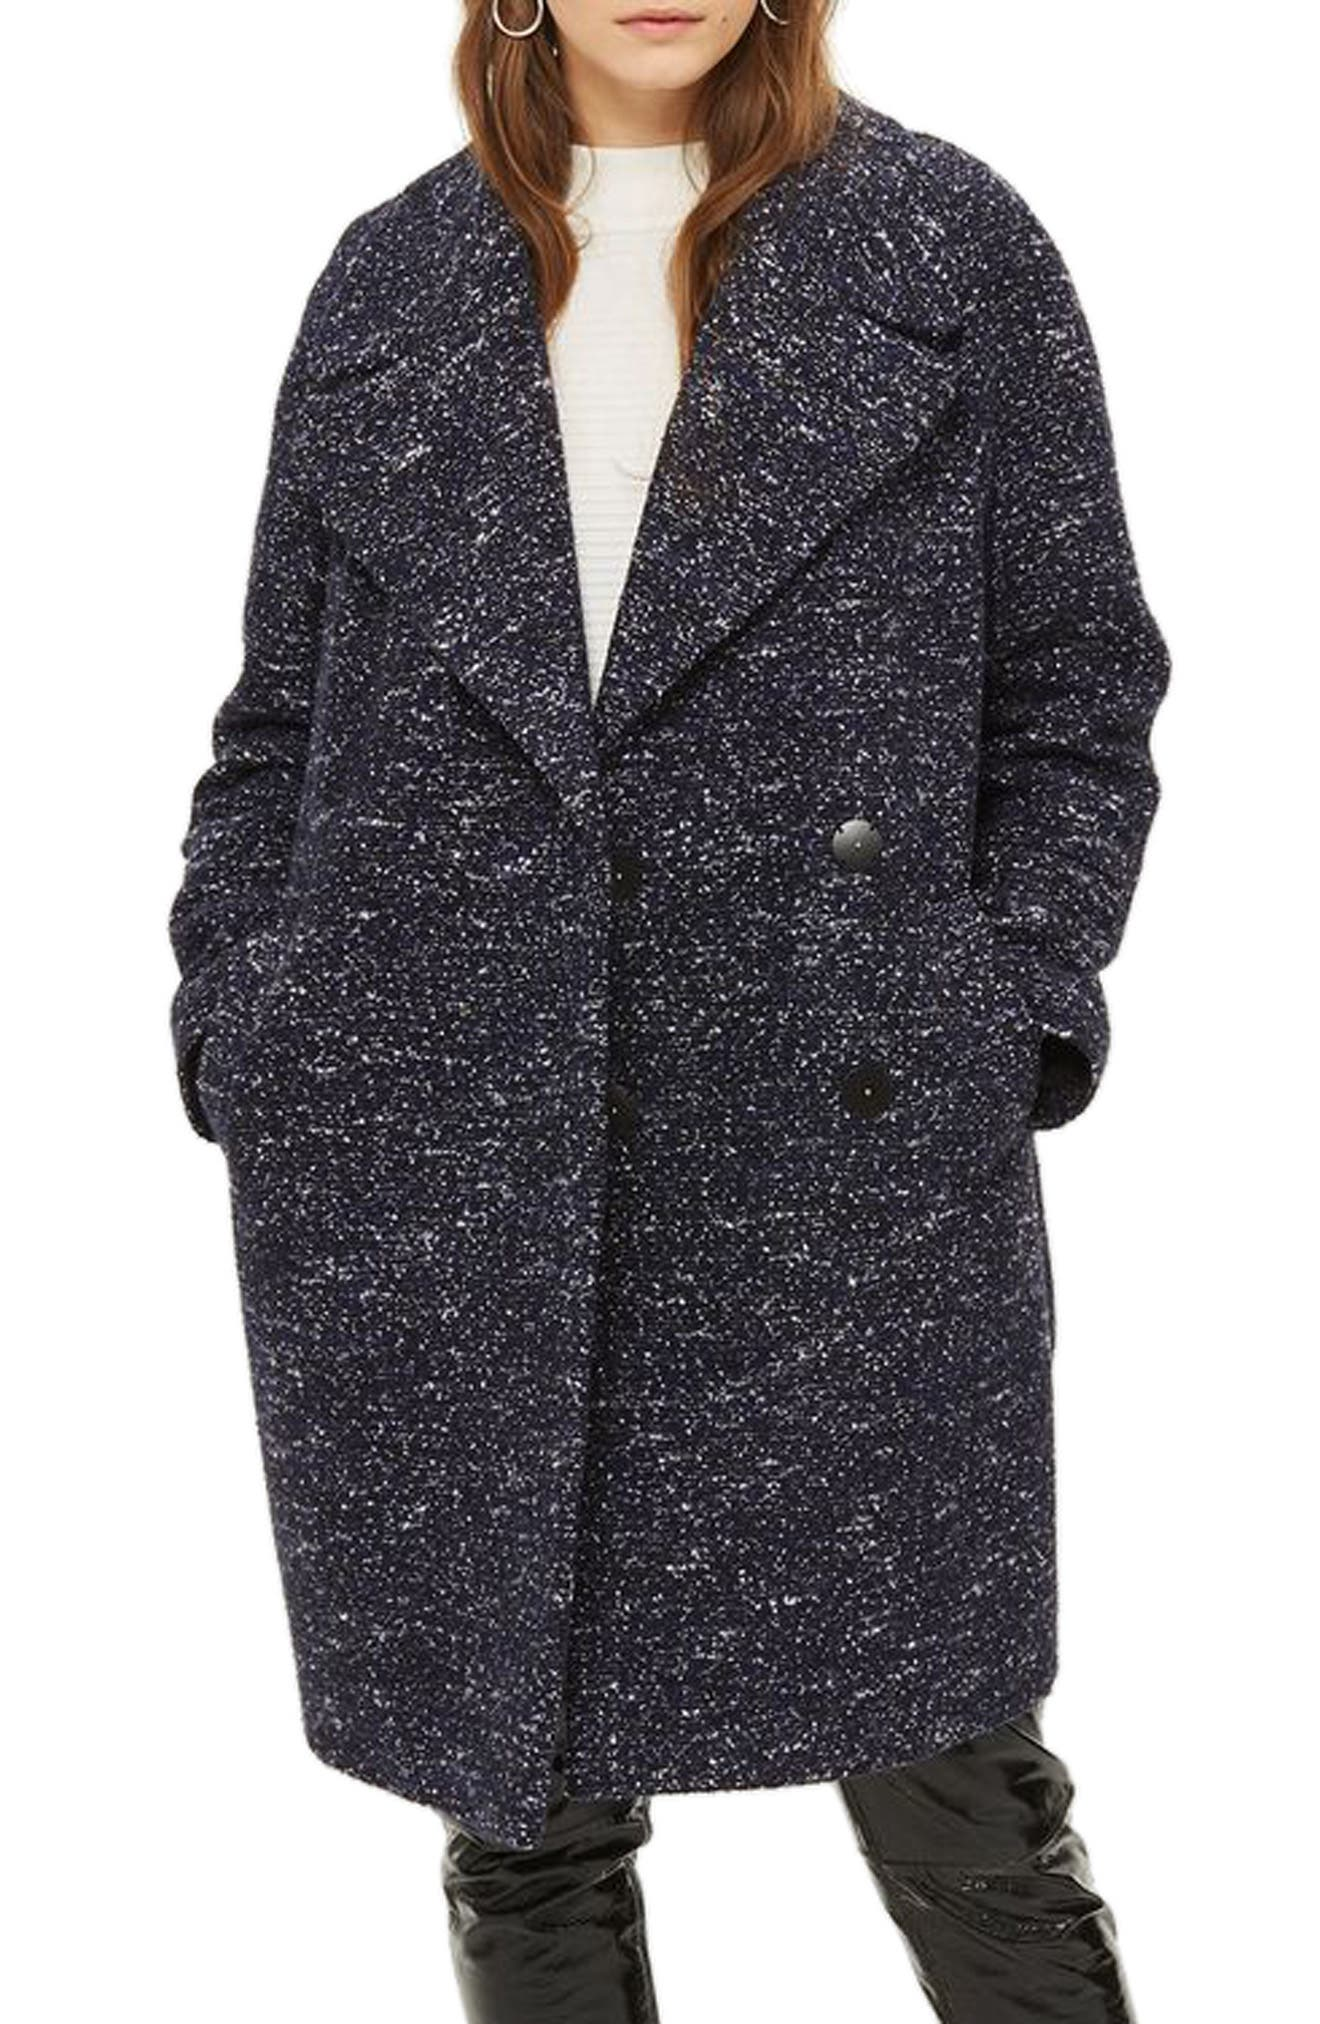 Bouclé Cocoon Coat,                         Main,                         color, Navy Blue Multi